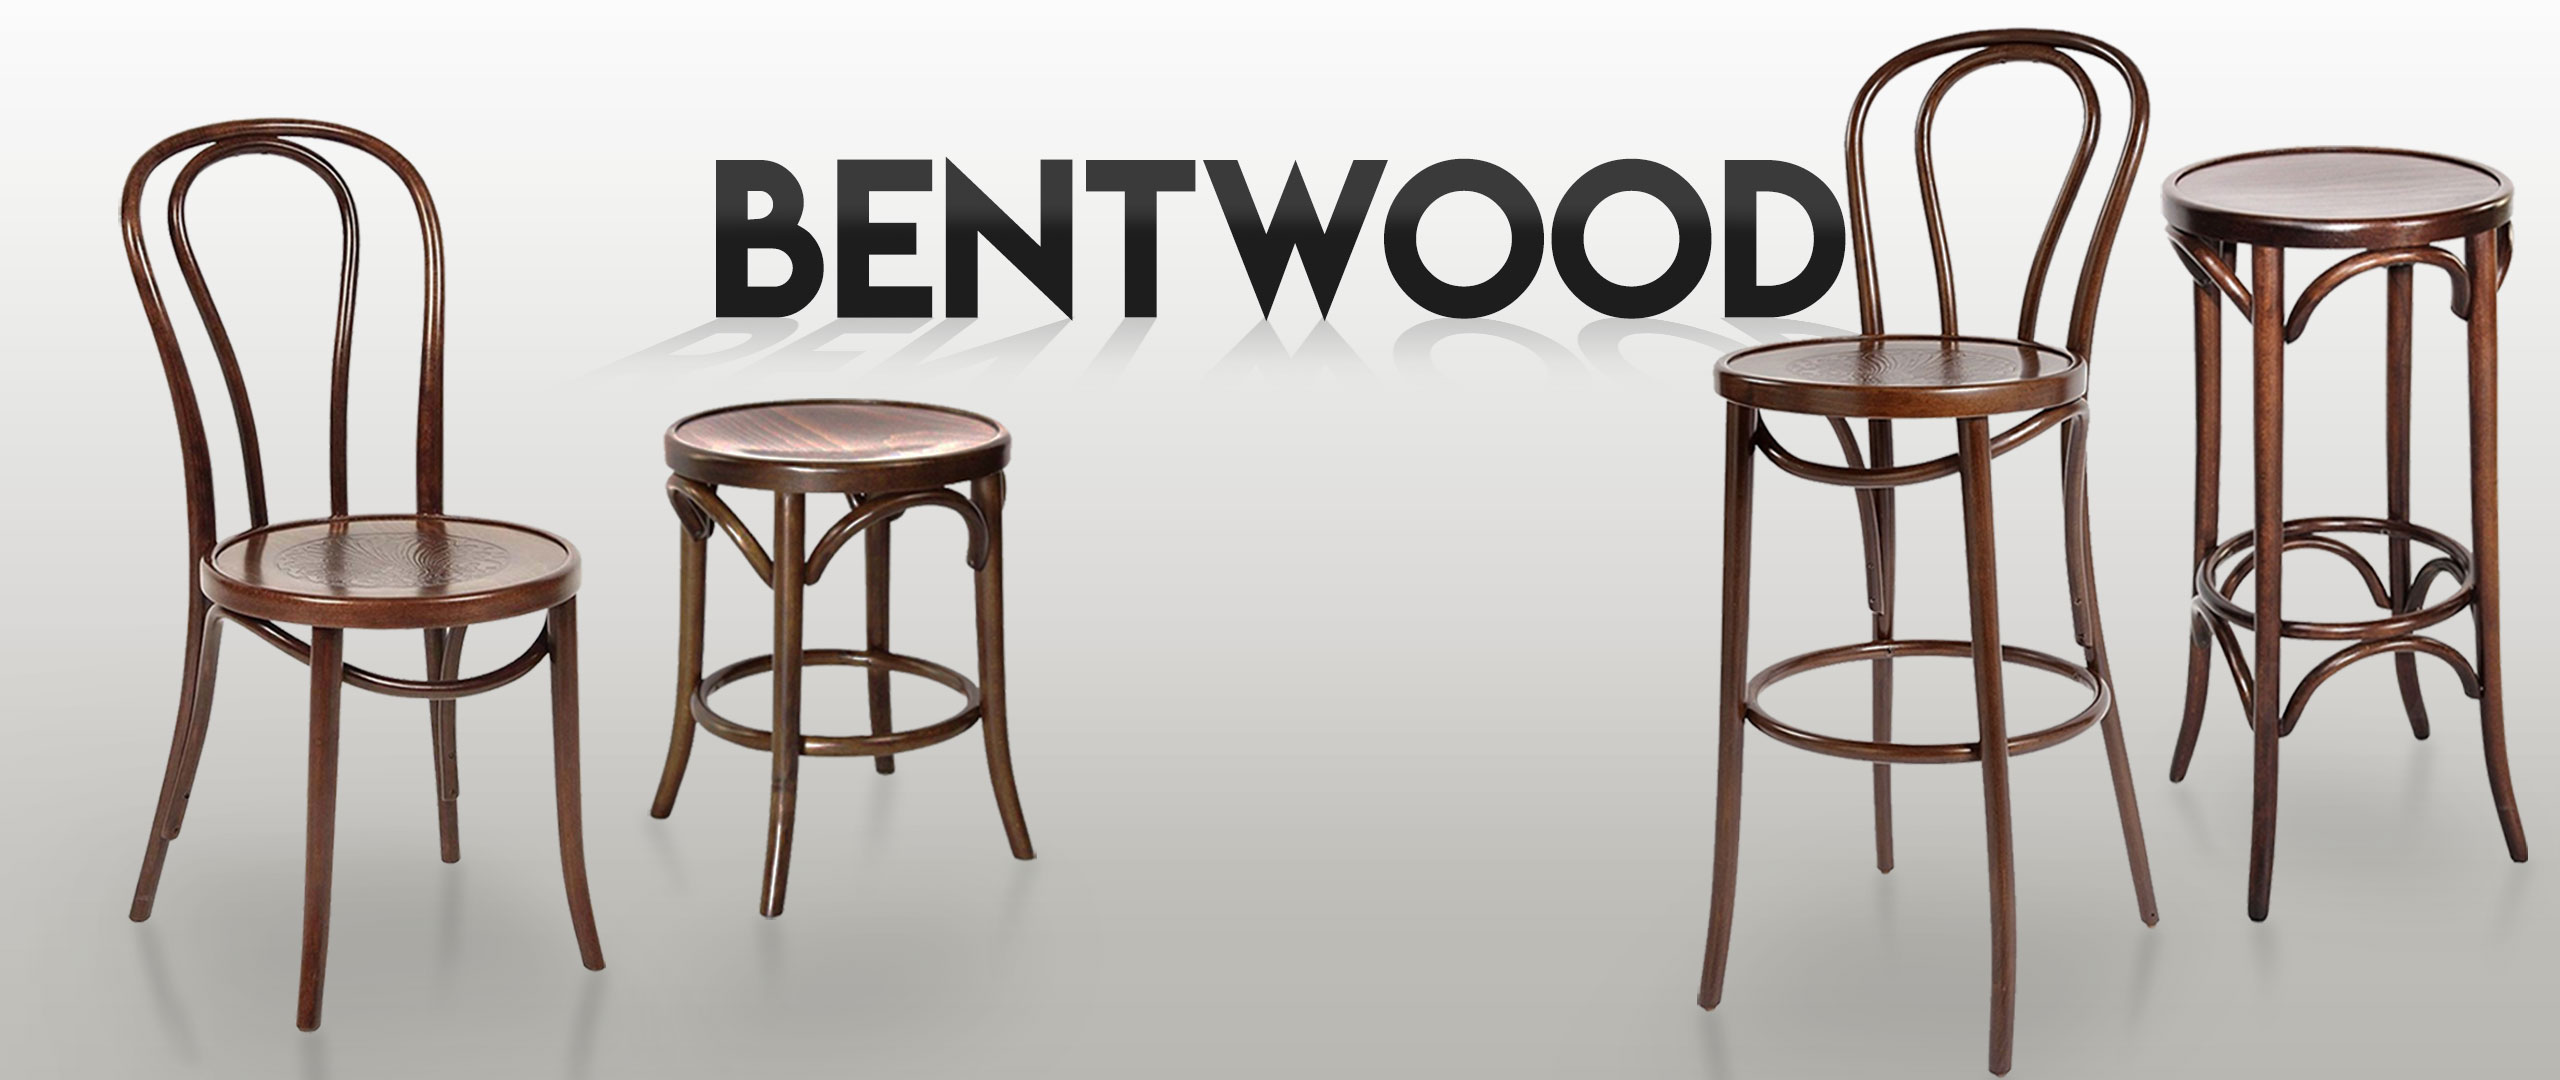 Bentwood Furniture